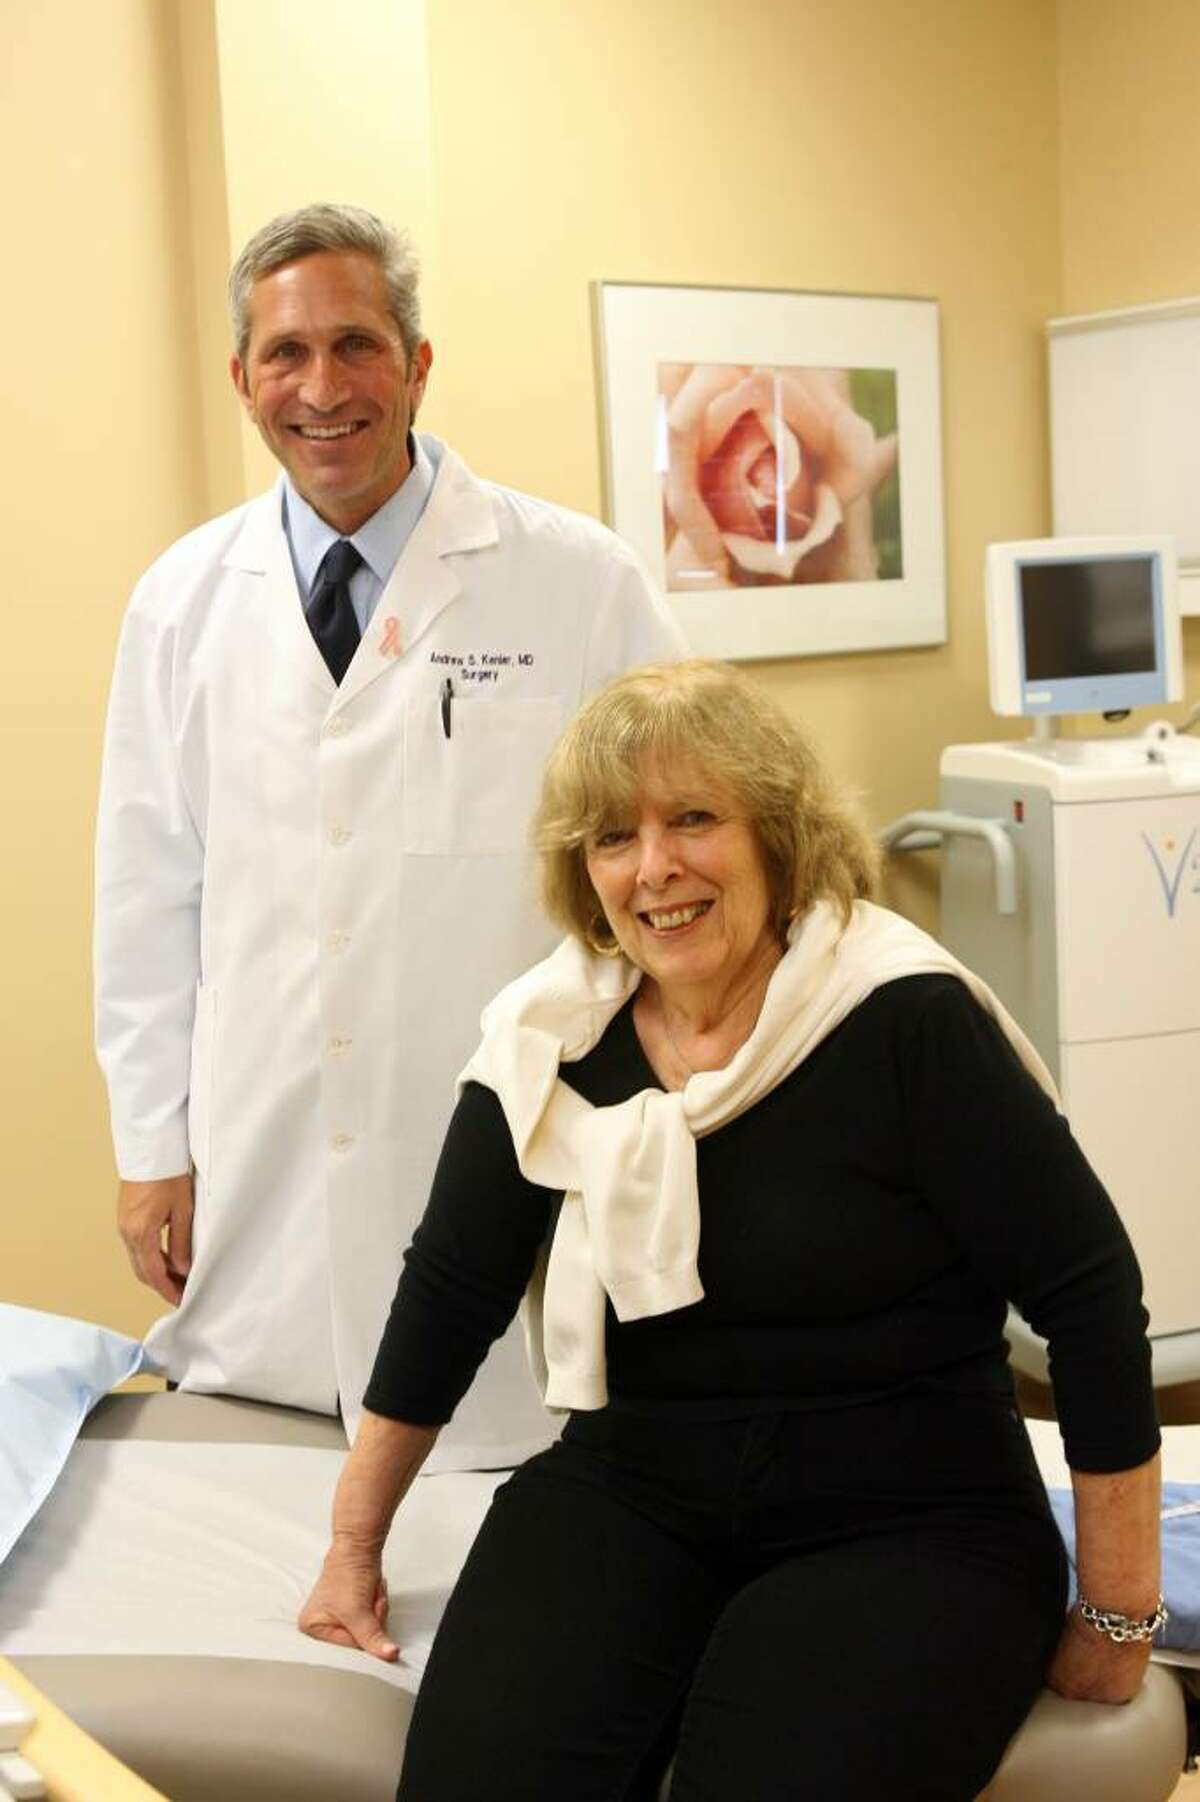 Dr Andrew Kenler stands in his Trumbull office with his patient, Judith Kudikoff of Bridgeport. Kenler ran a trial for a new treatment for breast cancer, which successfully treated Kudikoff.